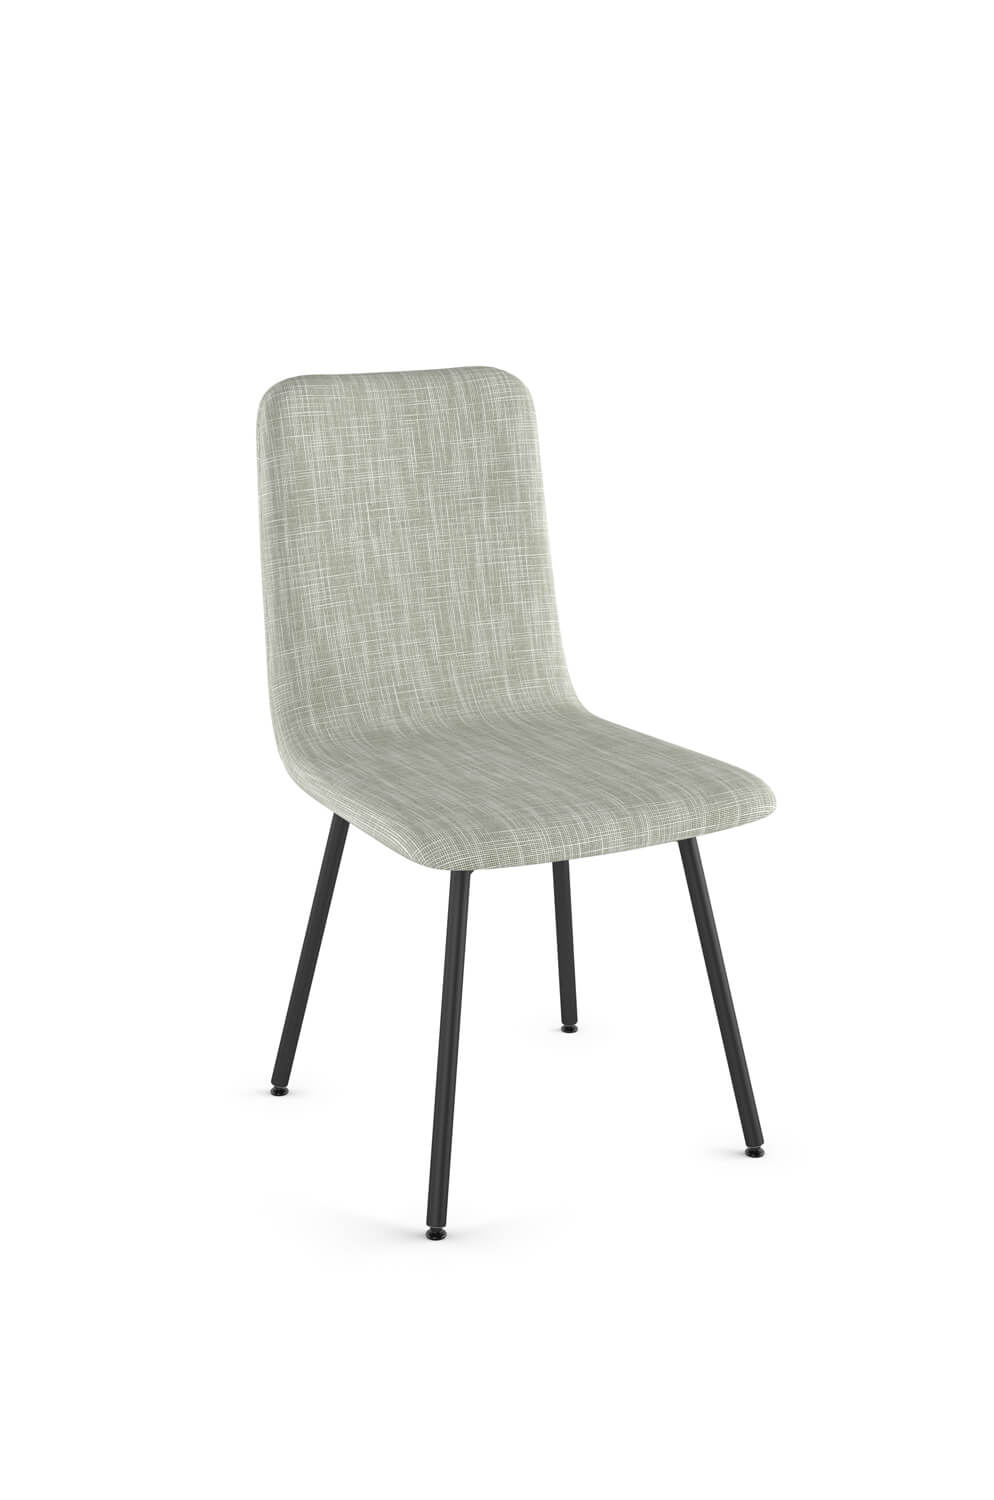 Bray Dining Chair with High Back